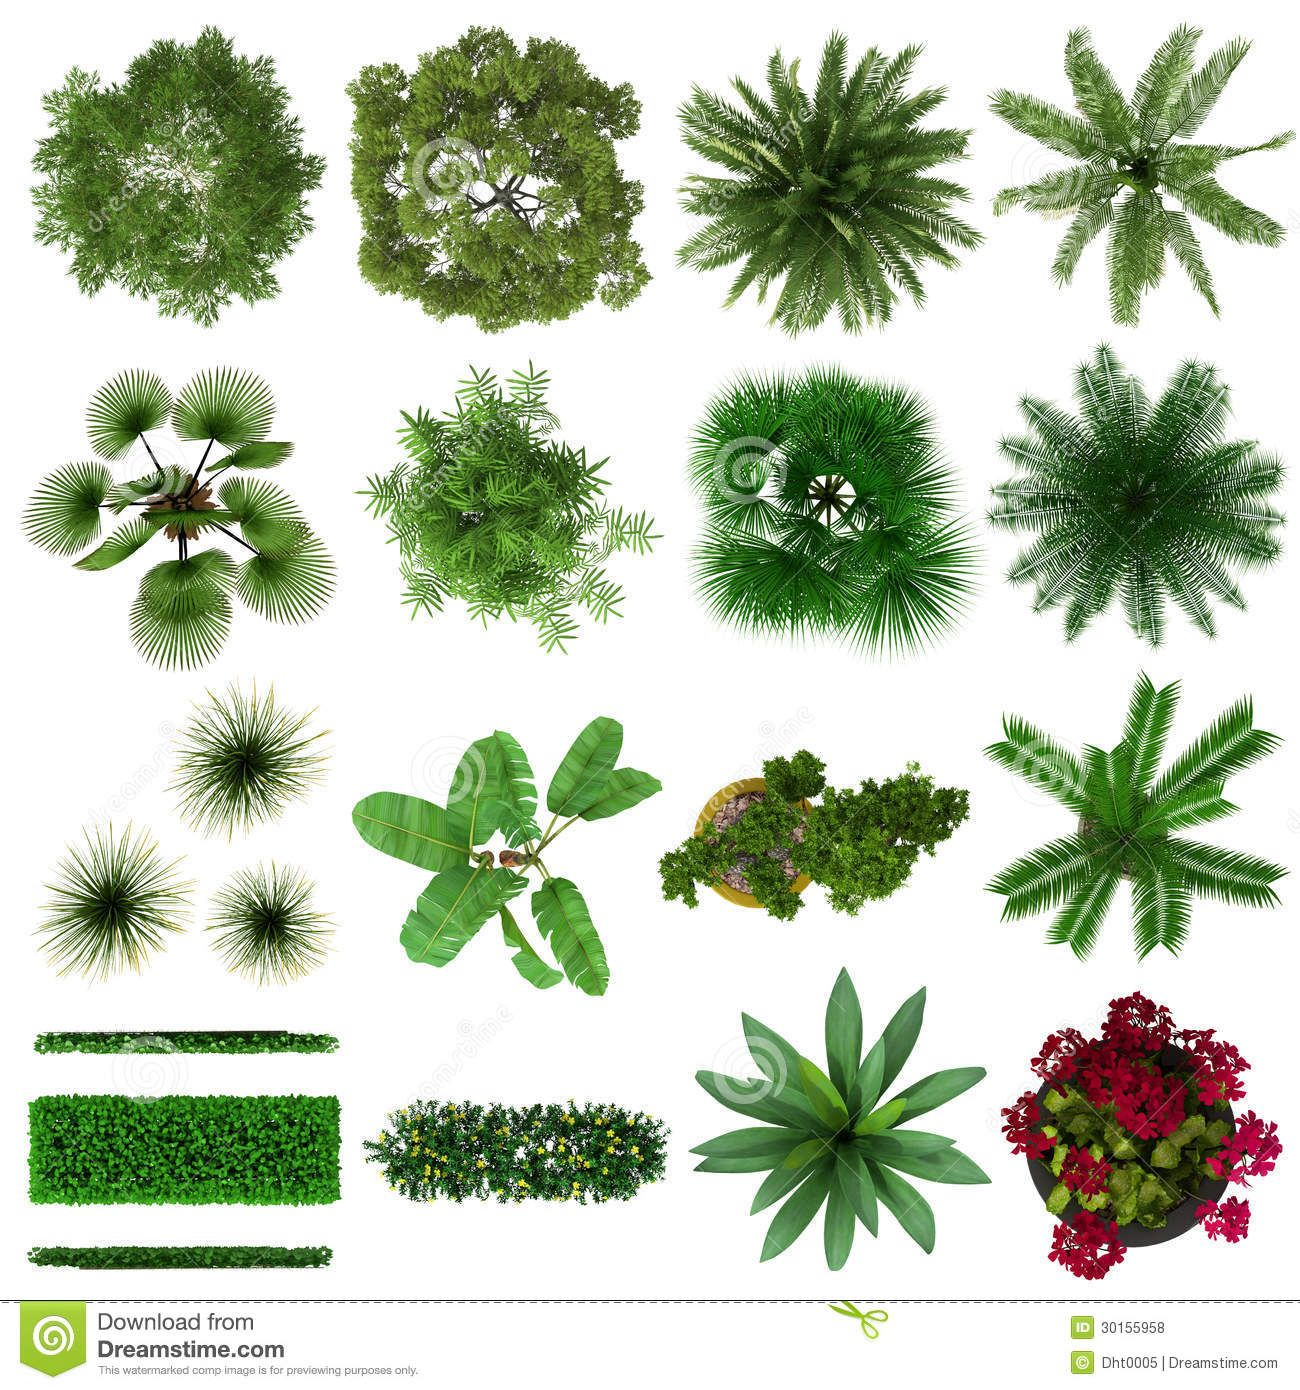 Top view plants 02 2d plant entourage for architecture - Tropical Plants Collection Top View Download From Over 38 Million High Quality Stock Photos